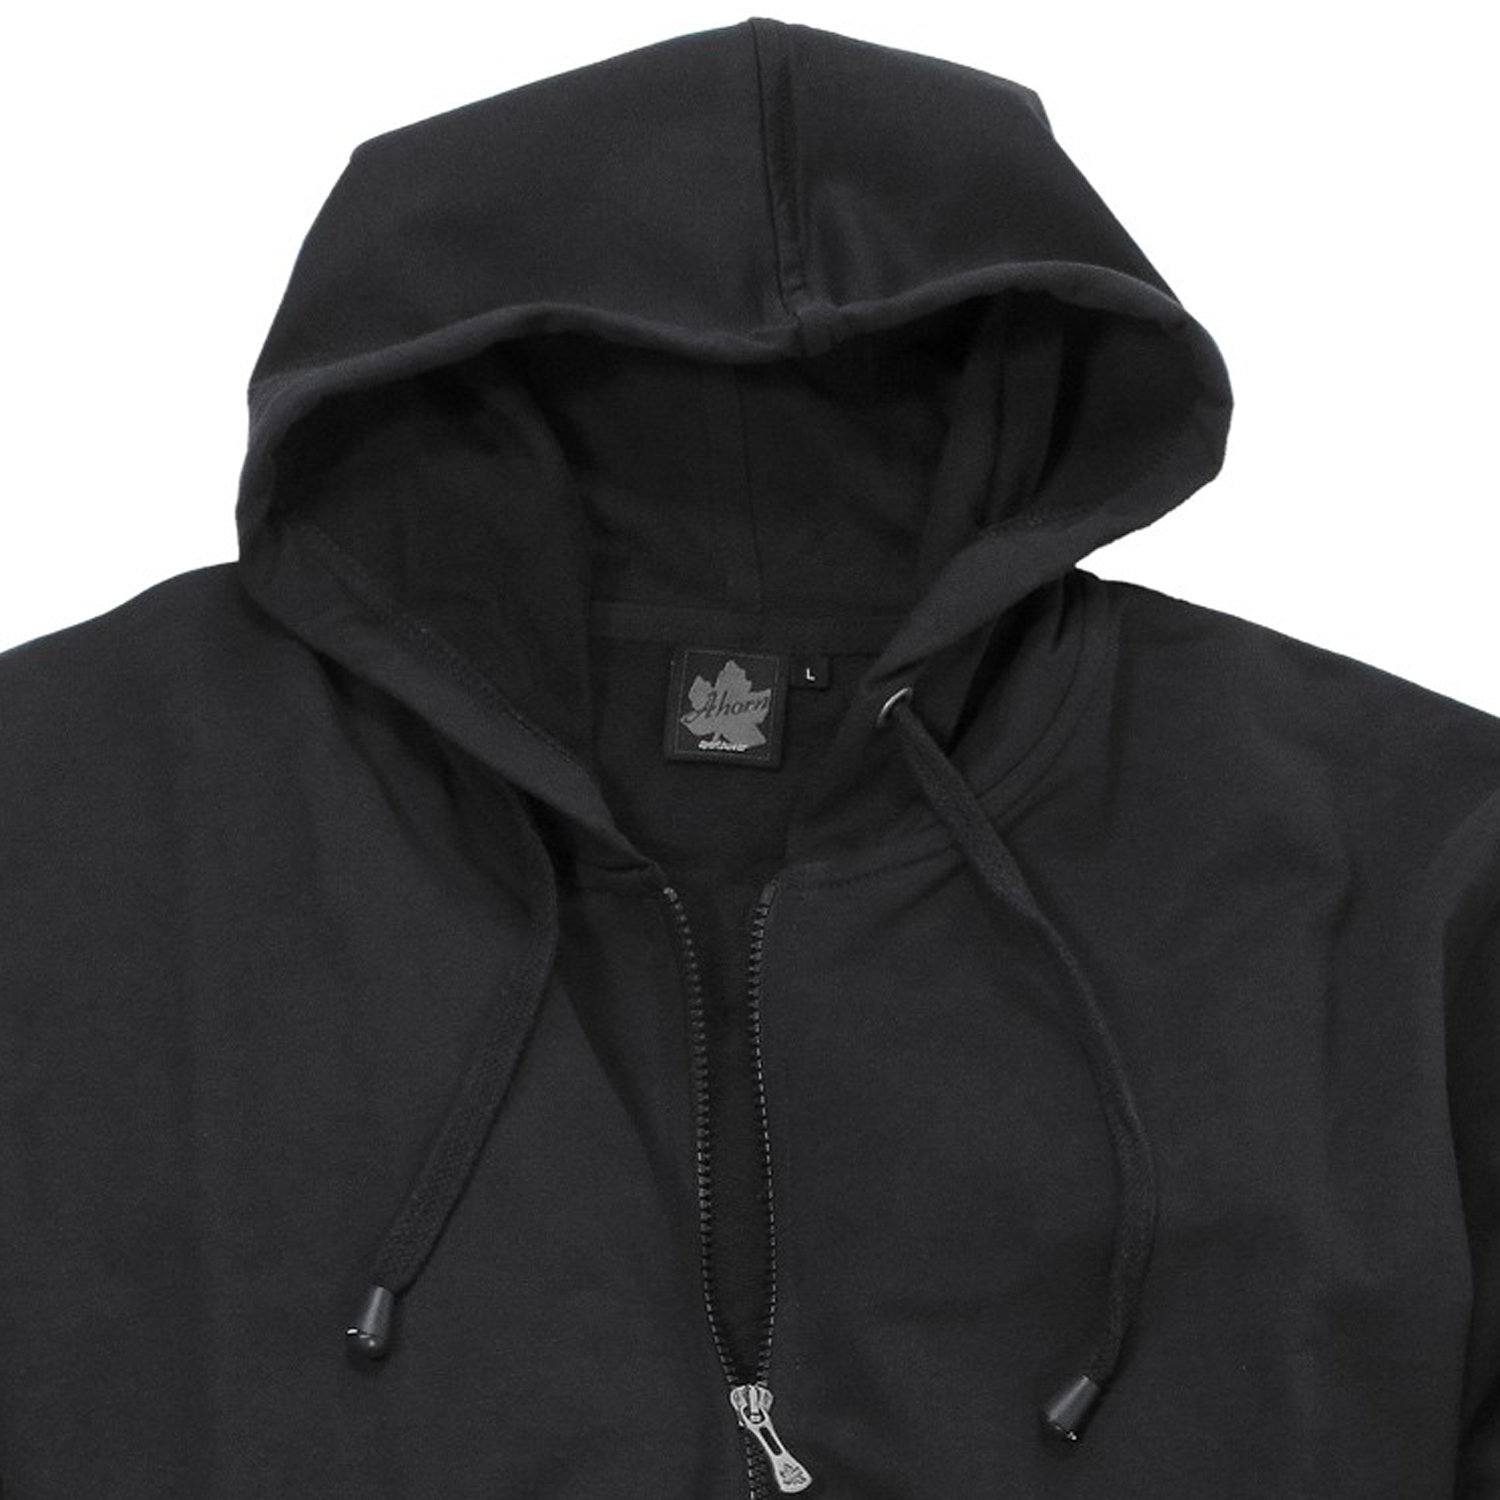 Detail Image to Hooded sweat jacket in black by Ahorn Sportswear up to oversize 10XL